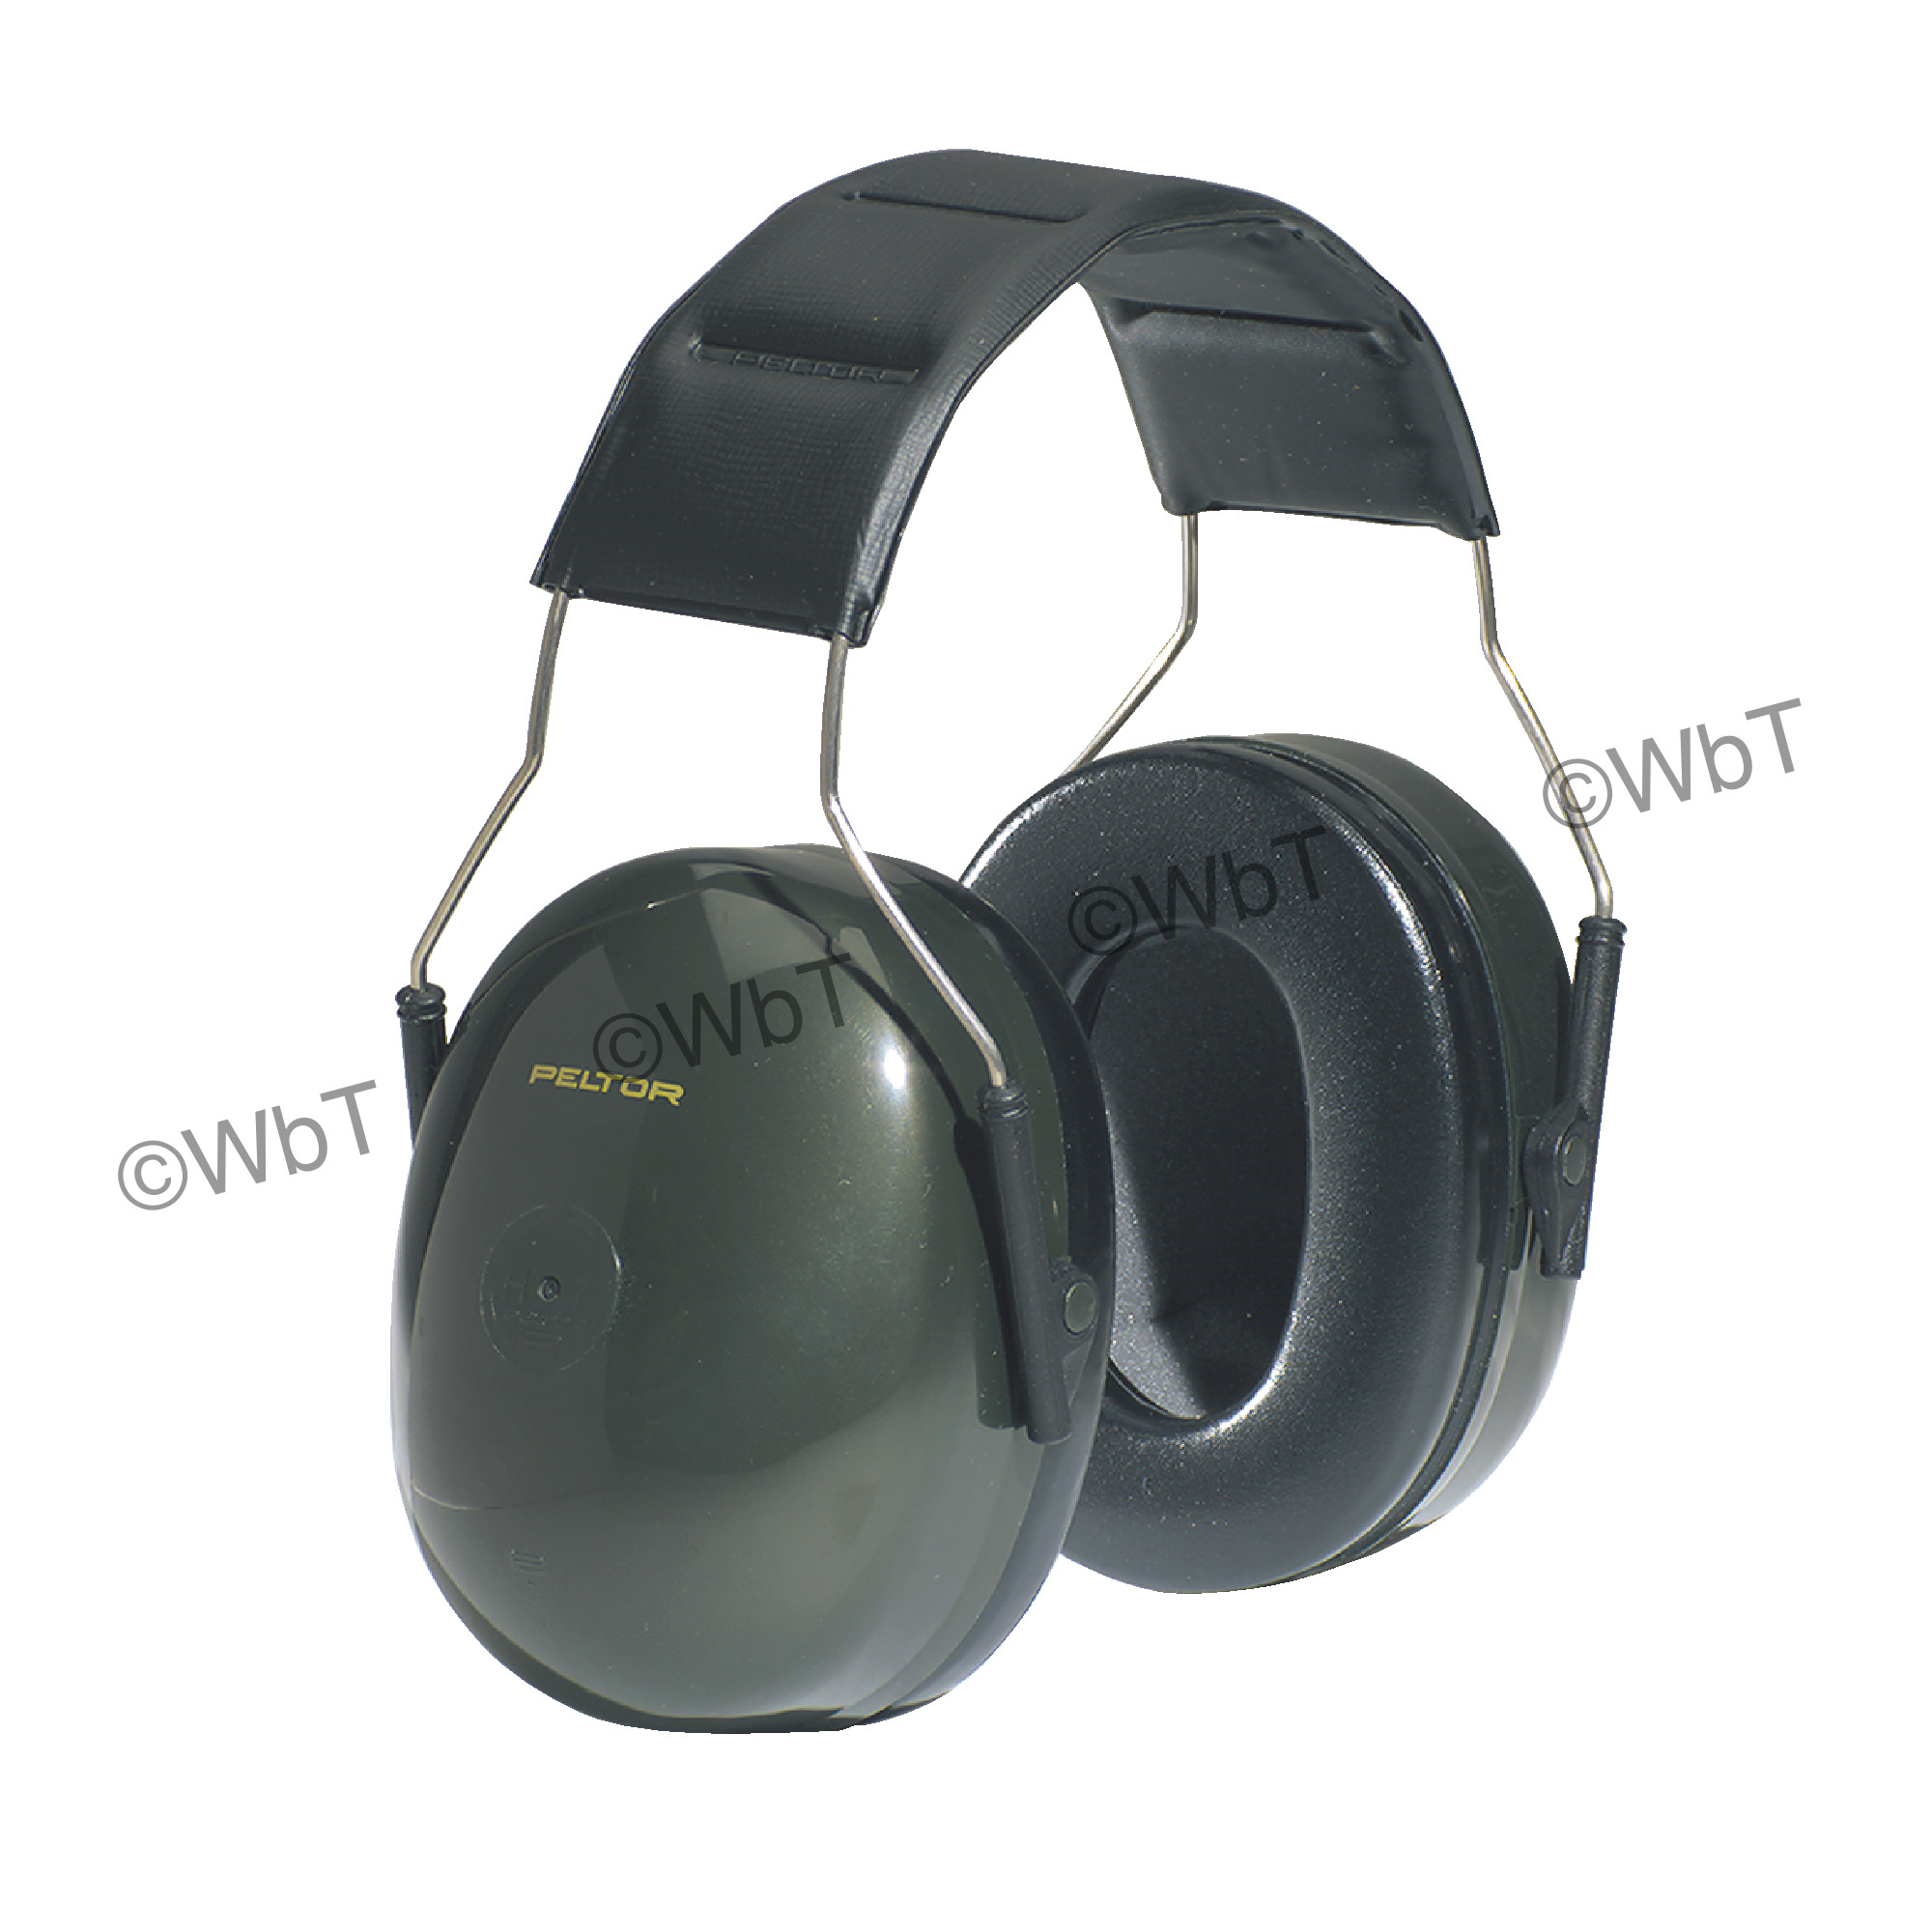 H7A Hearing Protector